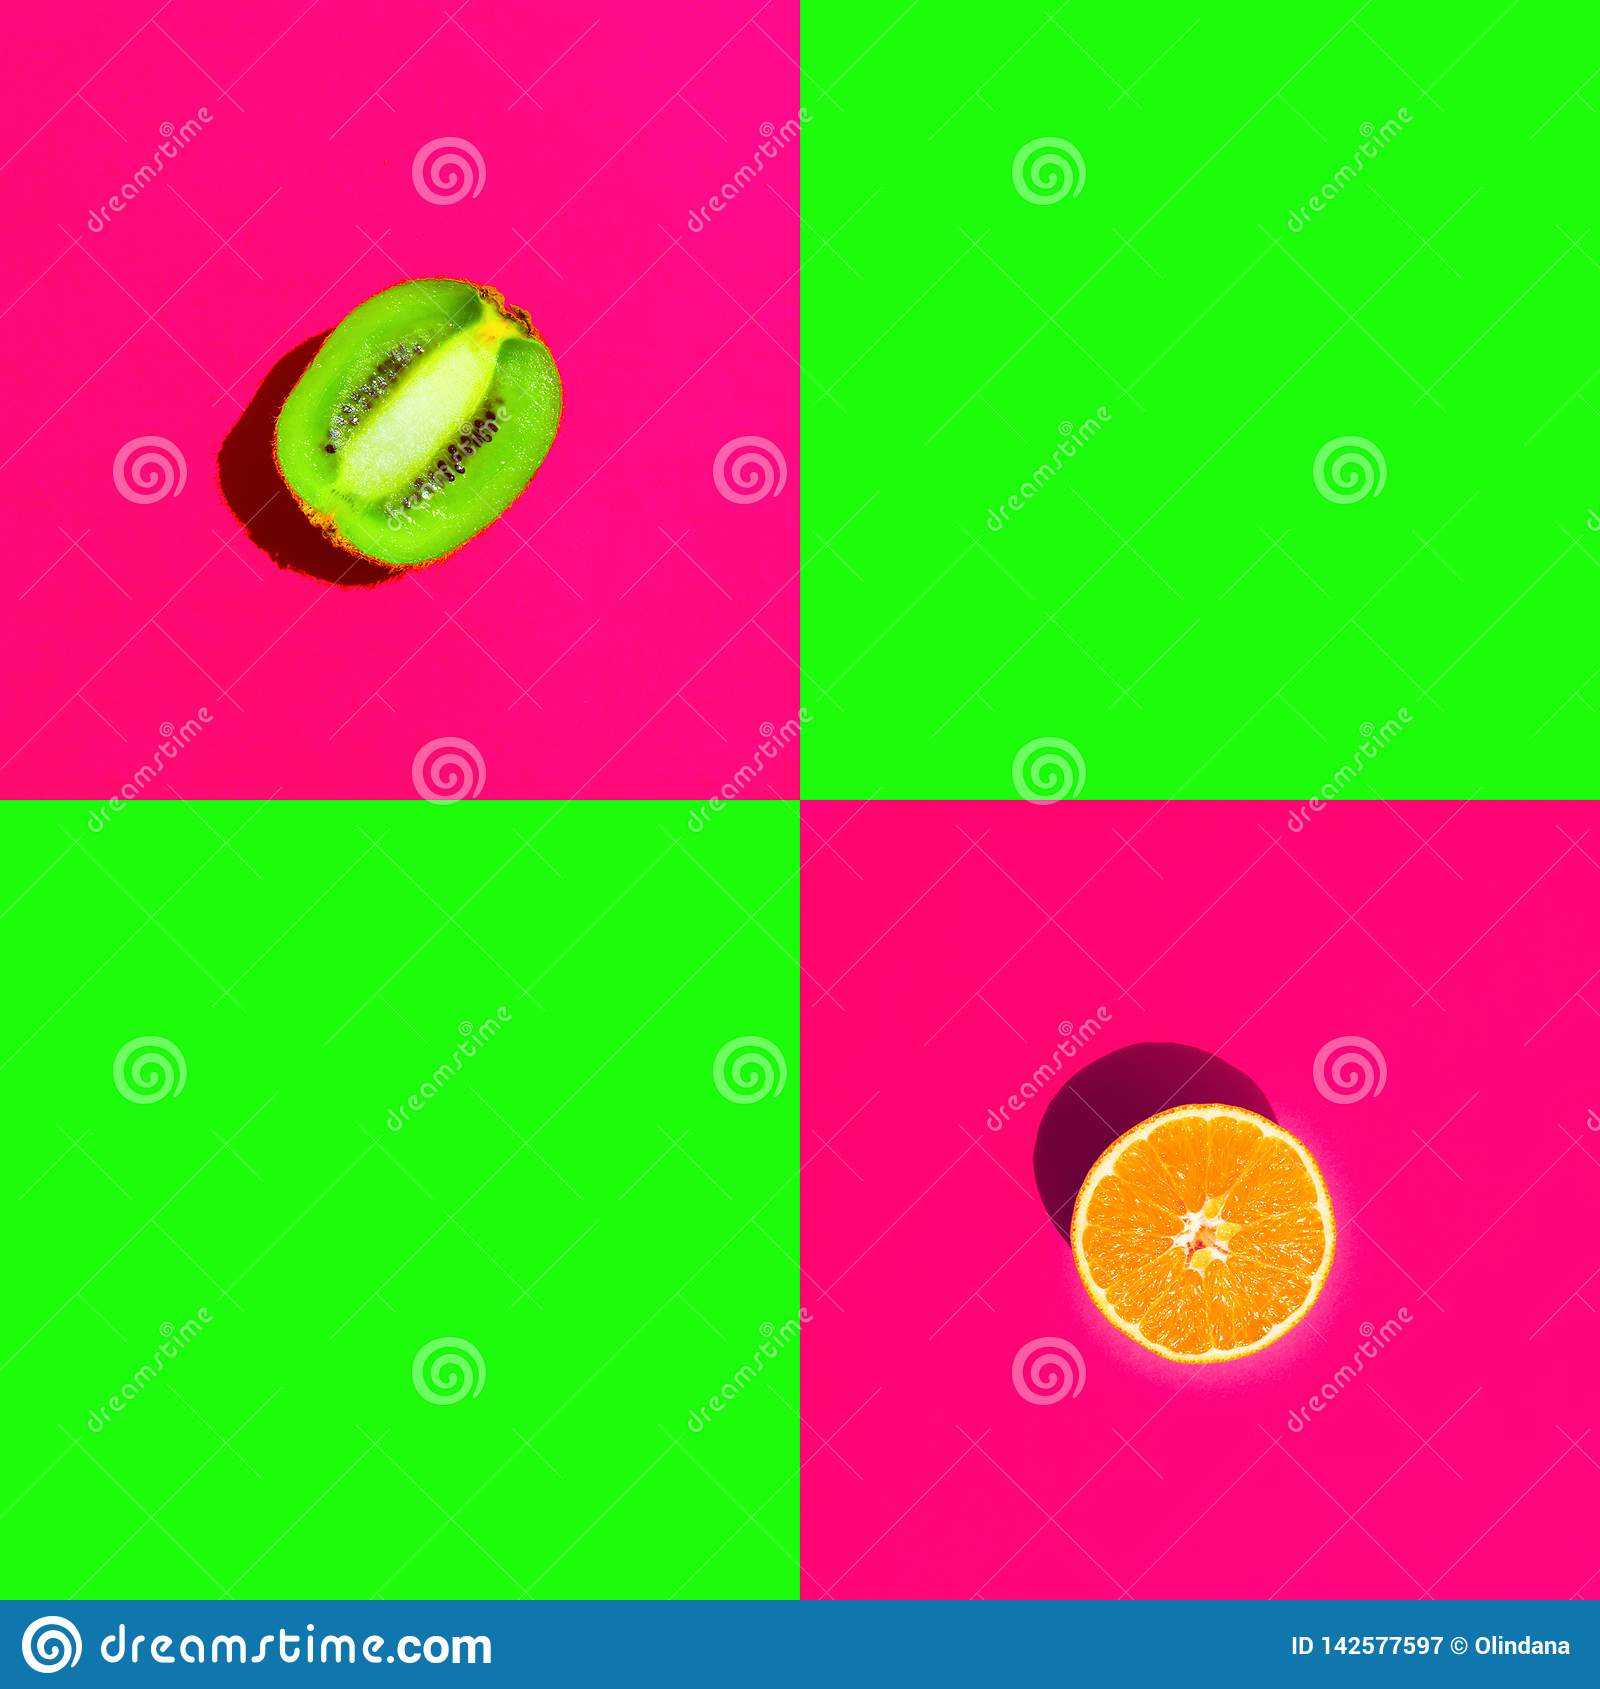 Ripe juicy halved orange kiwi on duotone bright neon fuchsia pink green background with blank squares for text